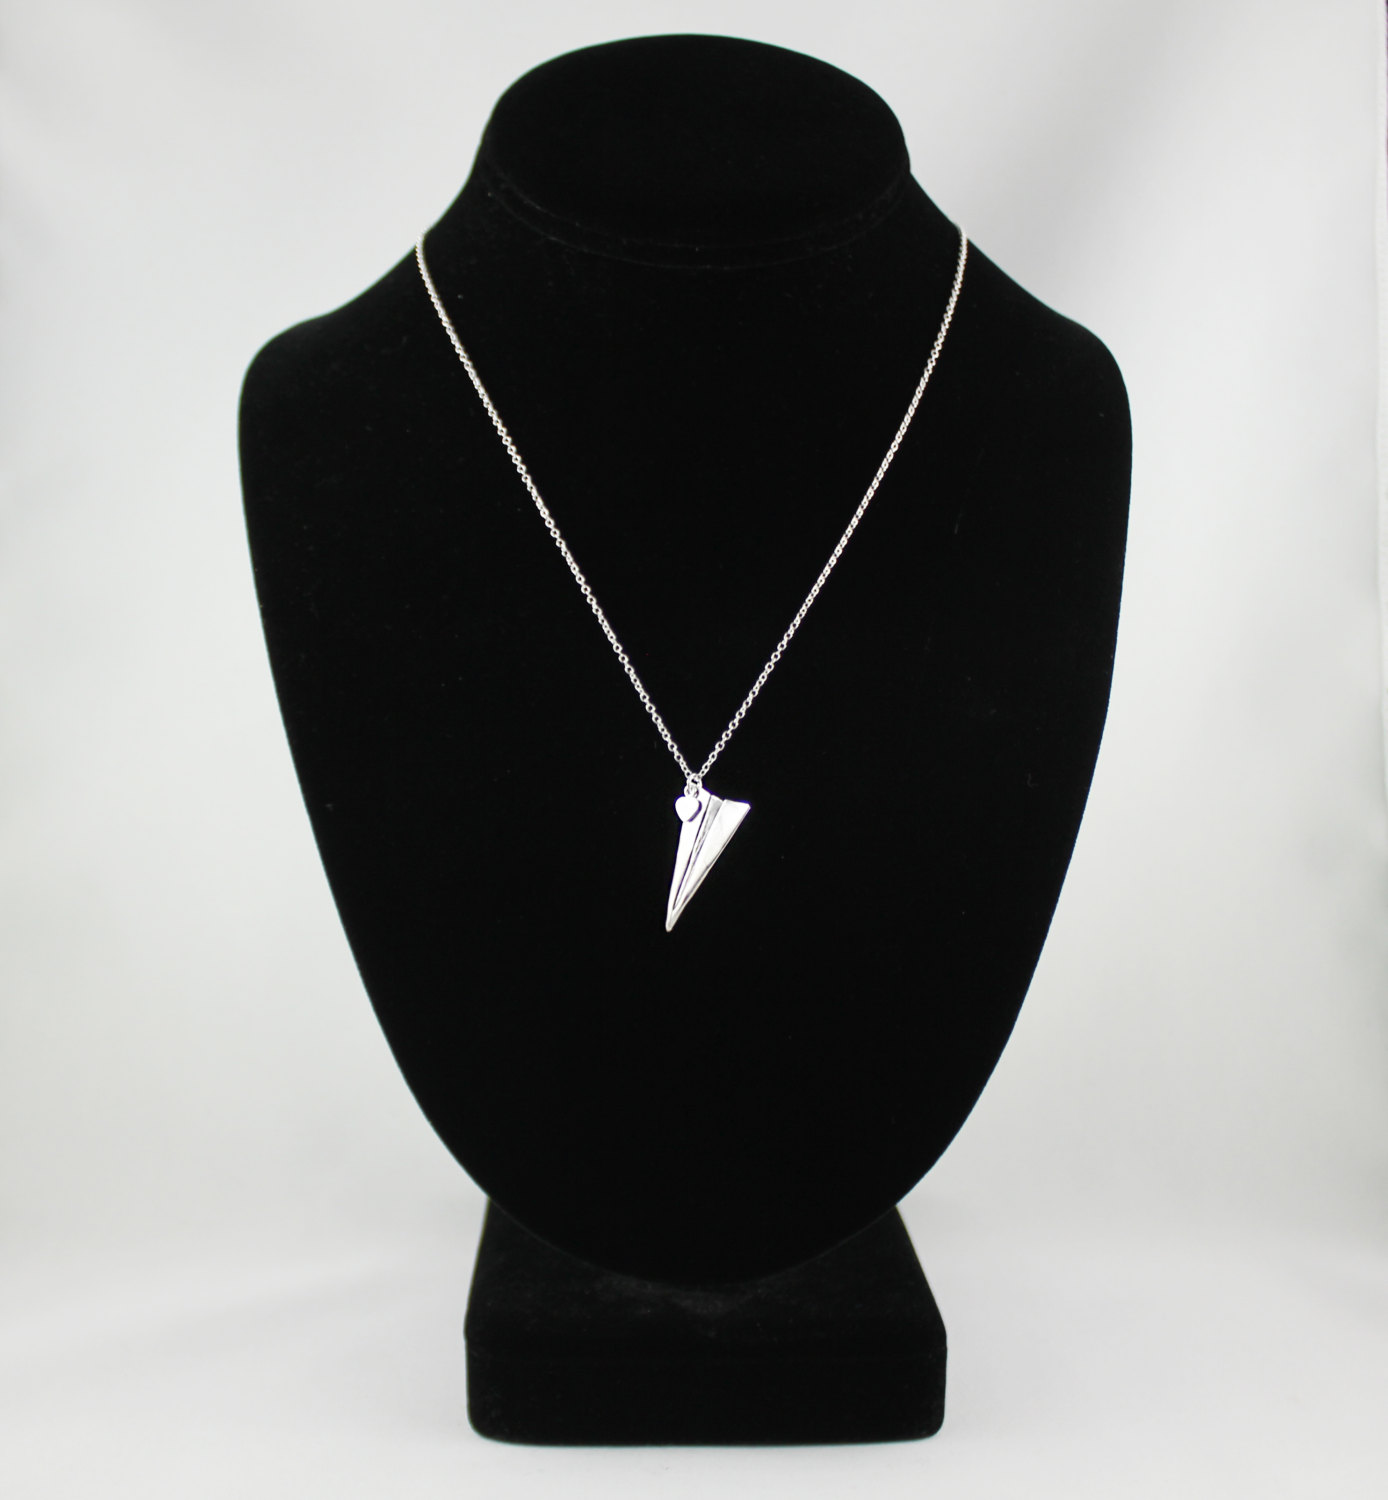 Handmade Paper Airplane Necklace, Silver Jewelry, Paper Plane Necklace, Paper Airplane Charm on 18